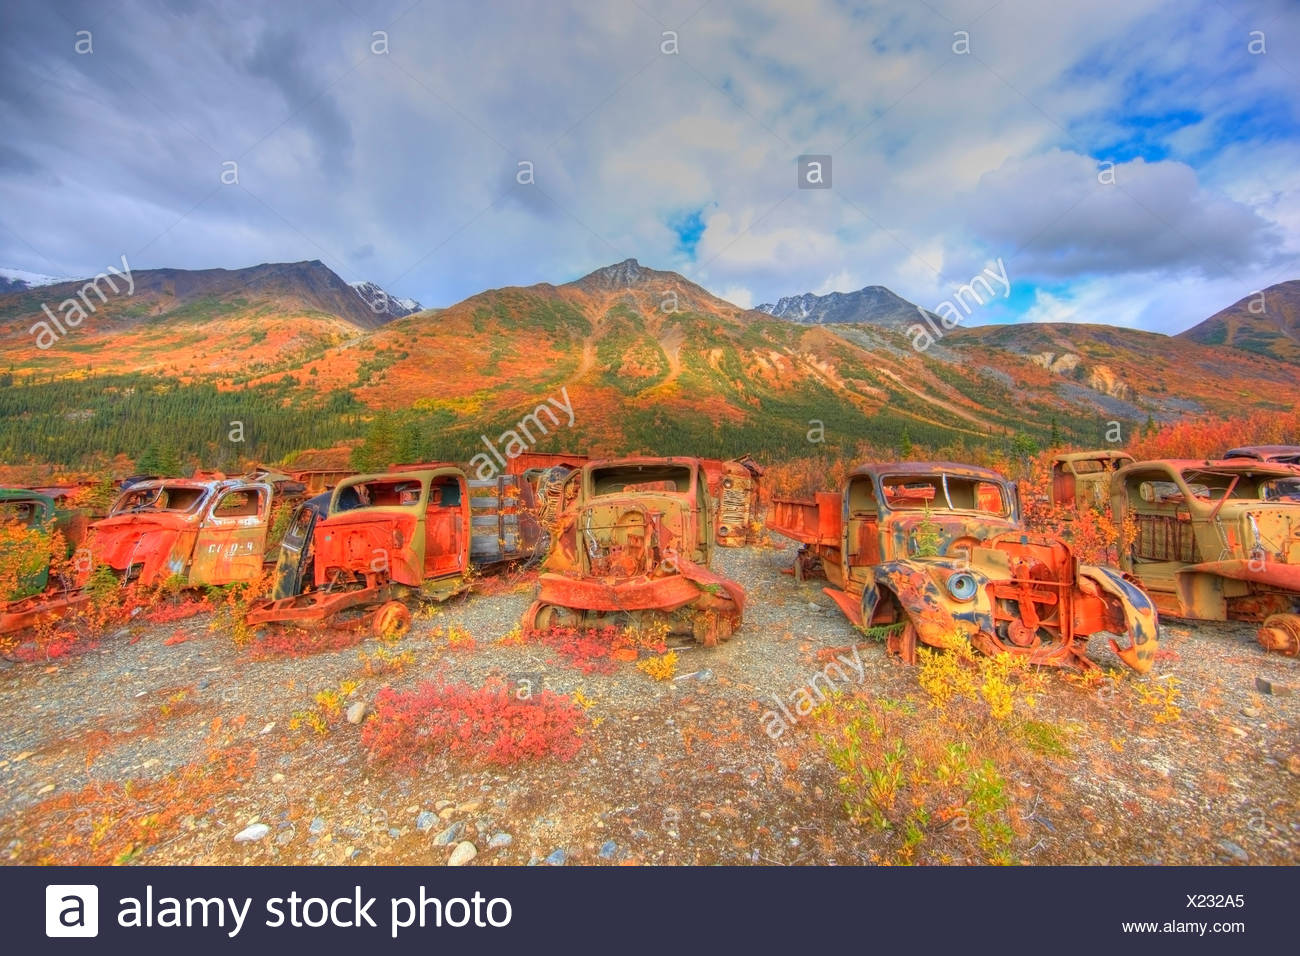 The Army Dump, also known as The Deadlines up the North Canol Road, Yukon. Located near MacMillin Pass. - Stock Image